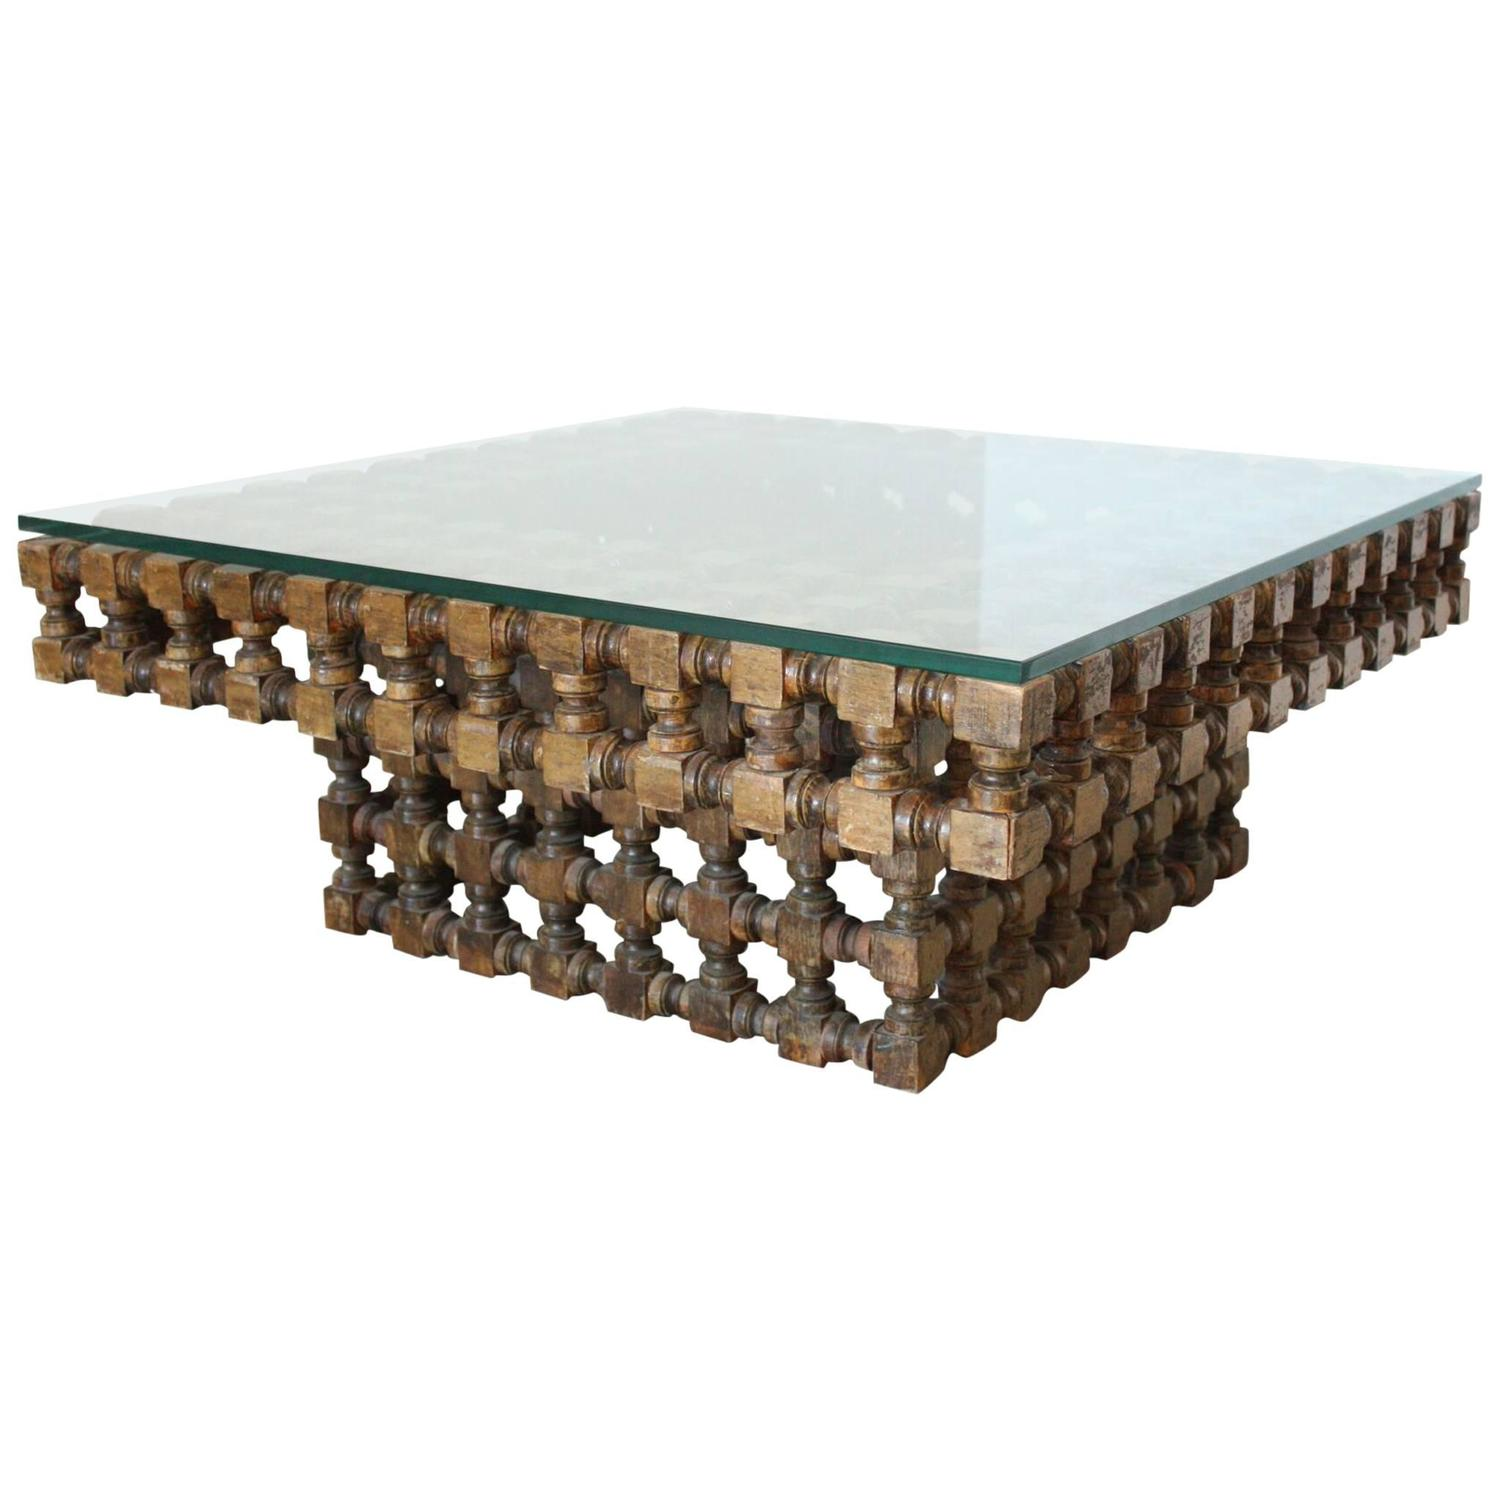 Moroccan Coffee Table 20th Century For Sale at 1stdibs